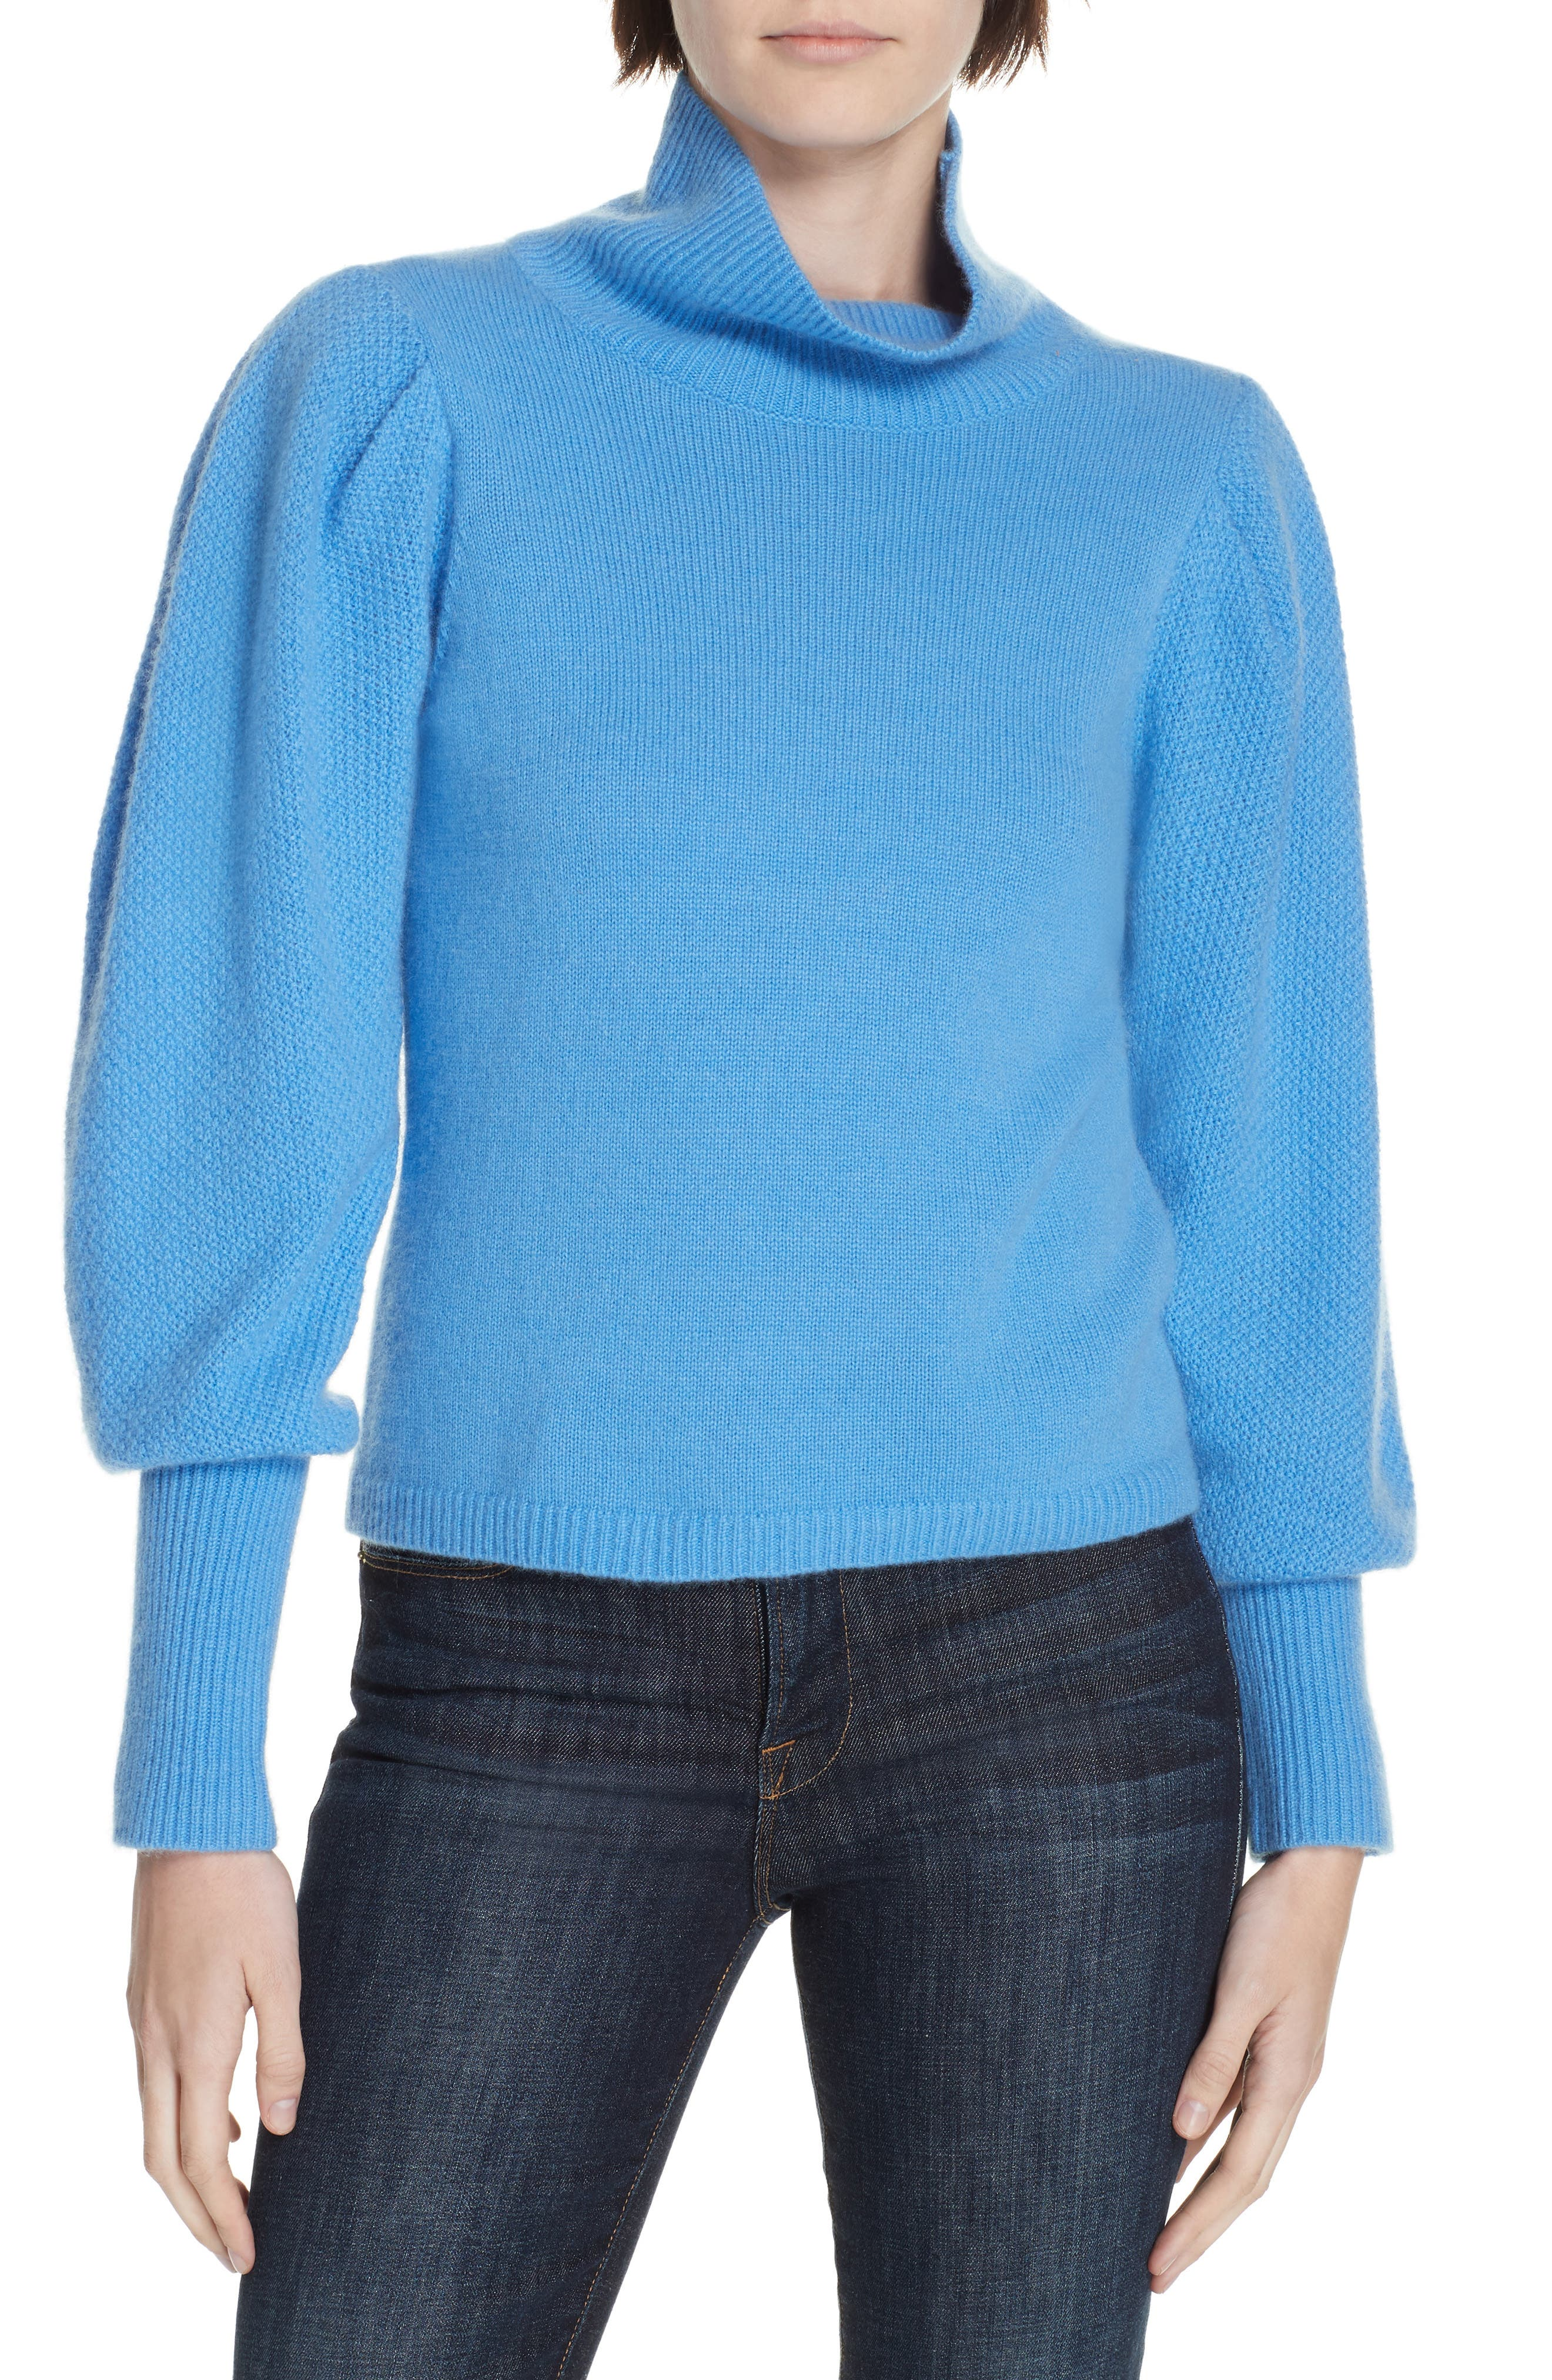 Beatrice Wool & Cashmere Sweater,                             Main thumbnail 1, color,                             HYDRANGEA